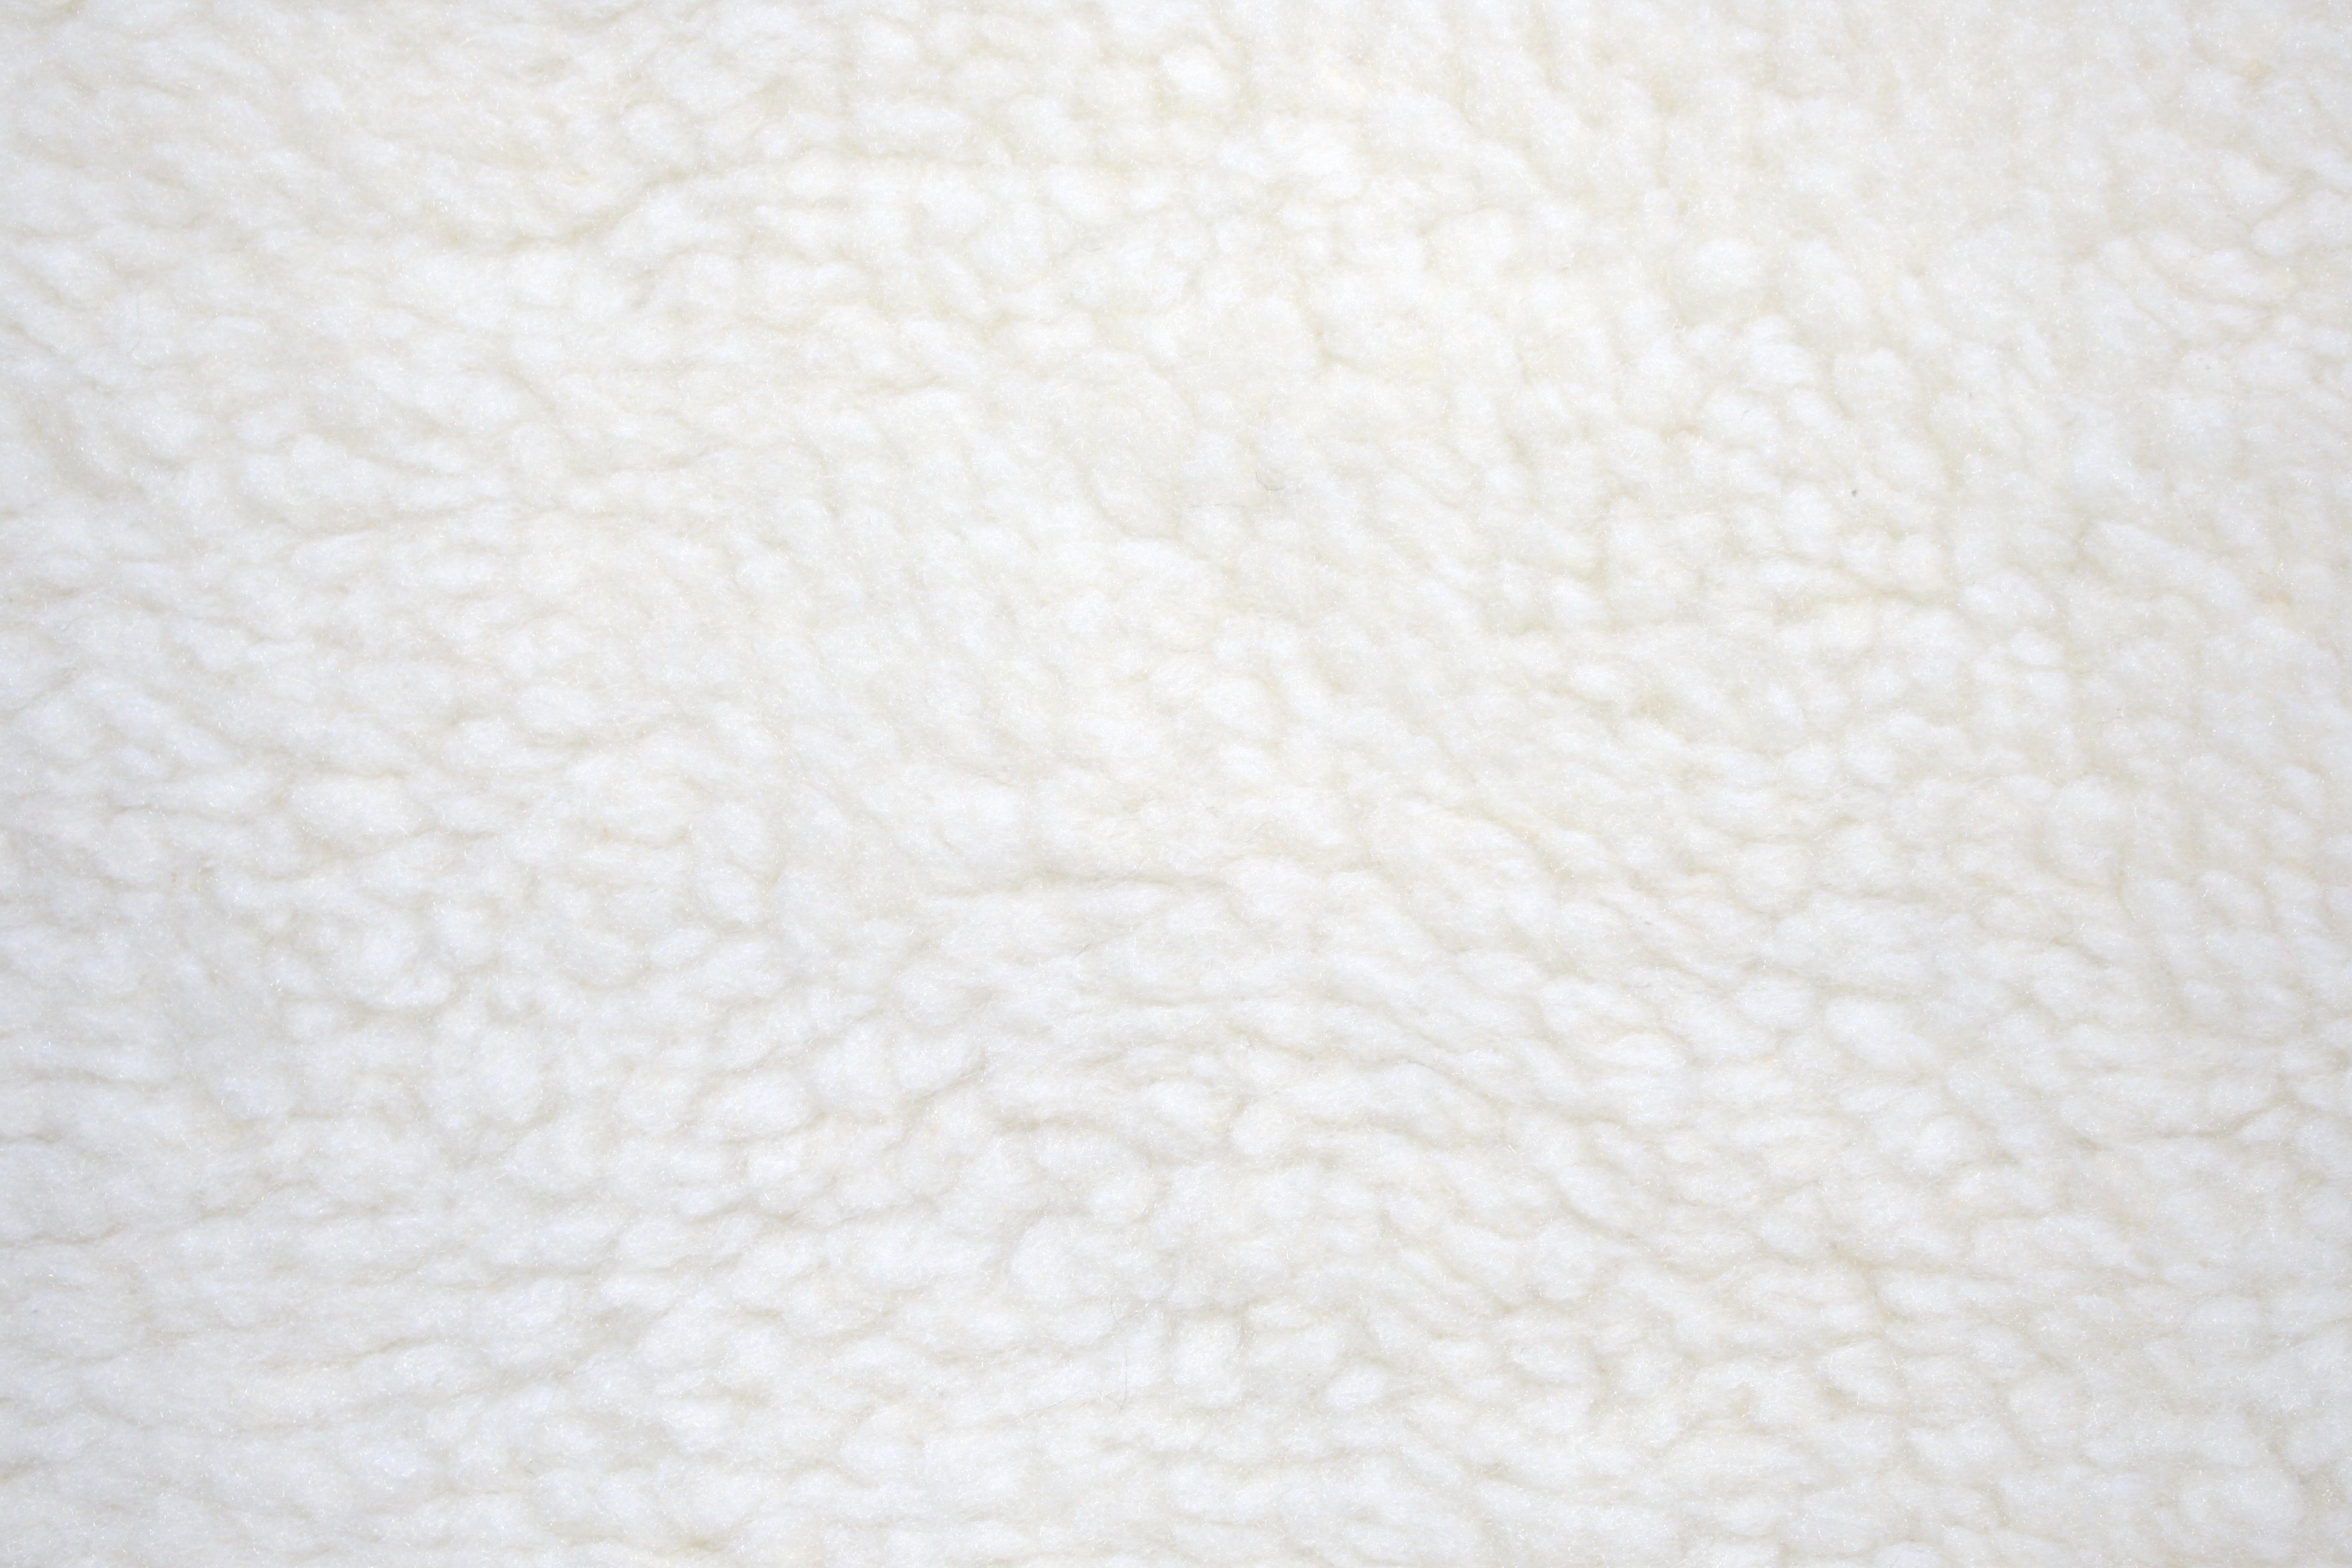 Fleece Faux Sherpa Wool Fabric Texture Natural Cream Picture Free